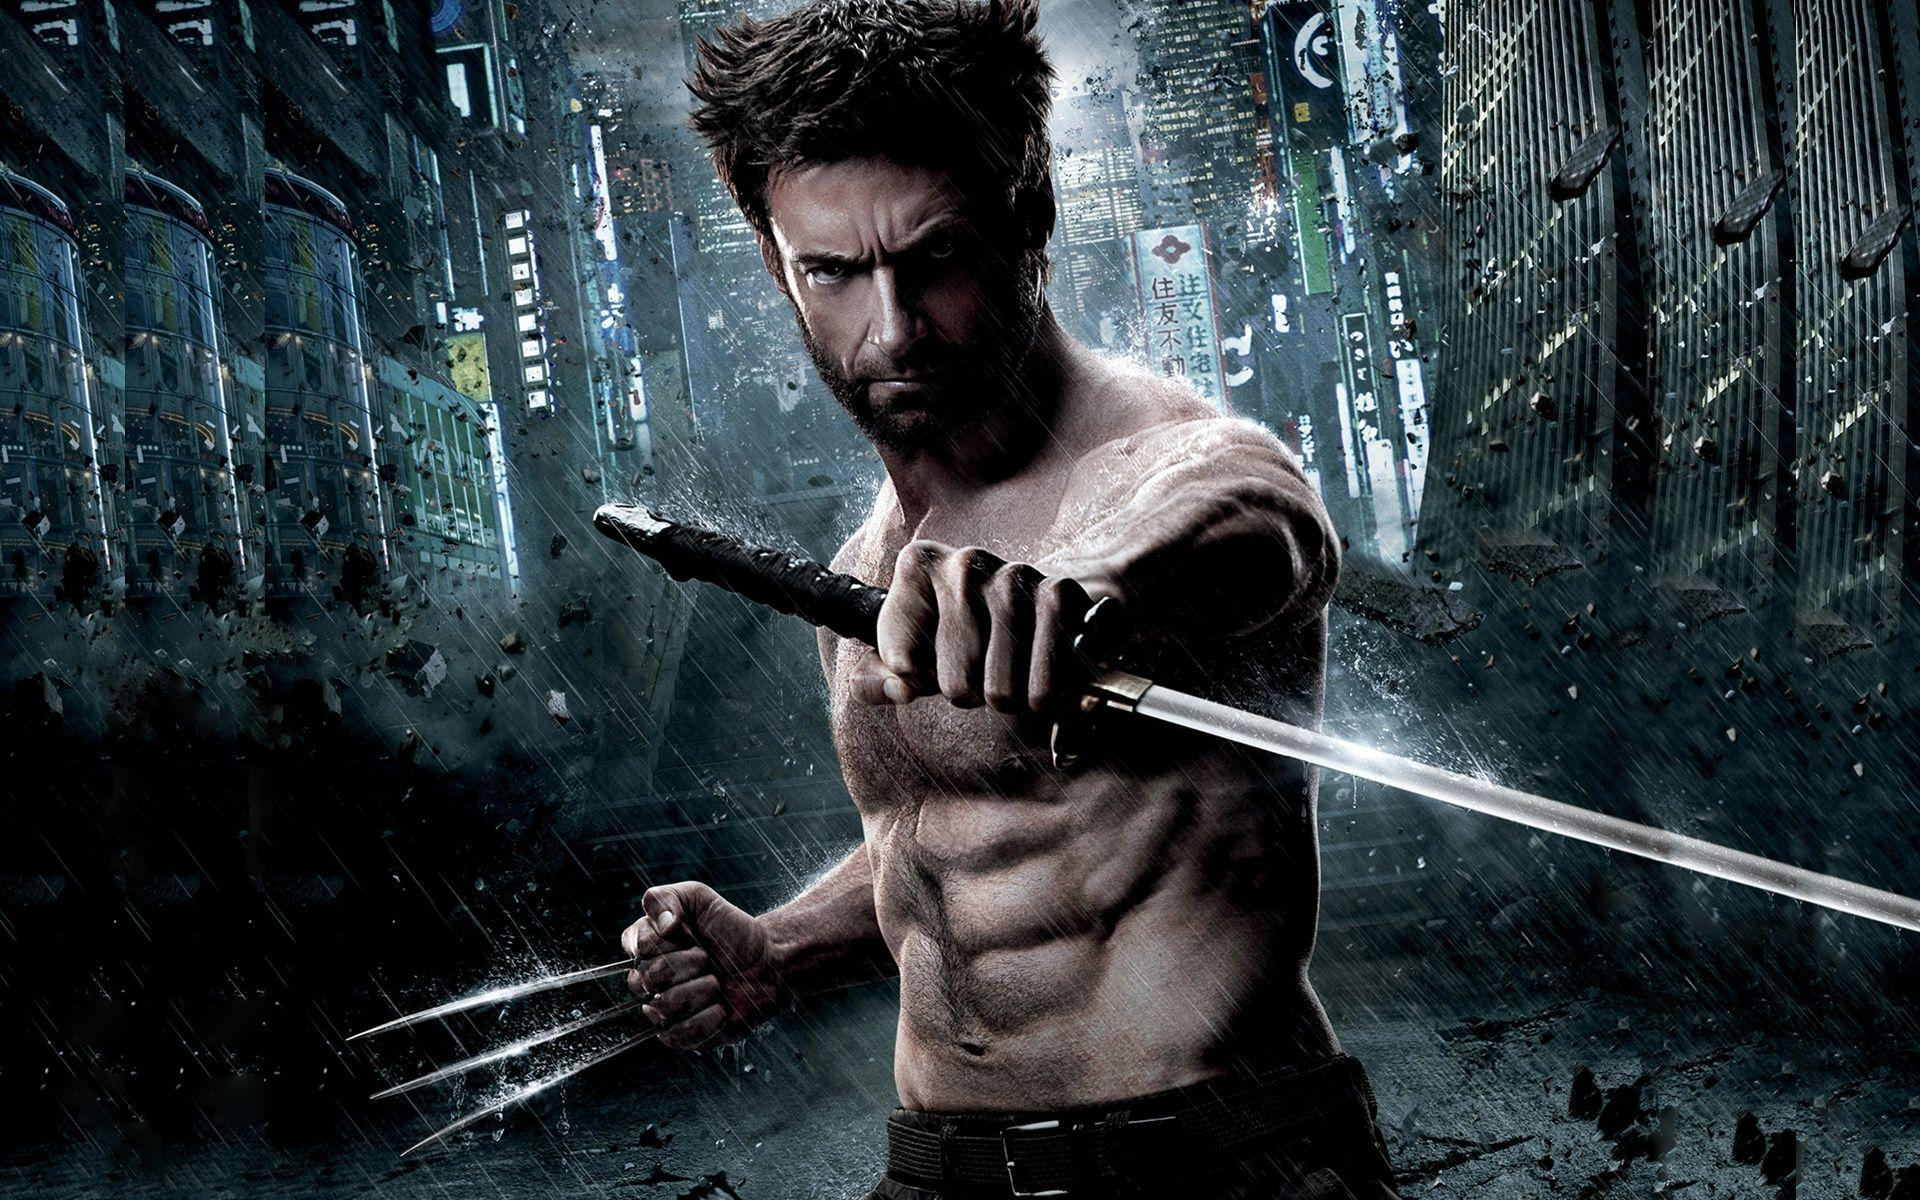 the wolverine Full HD Wallpapers and Backgrounds Image